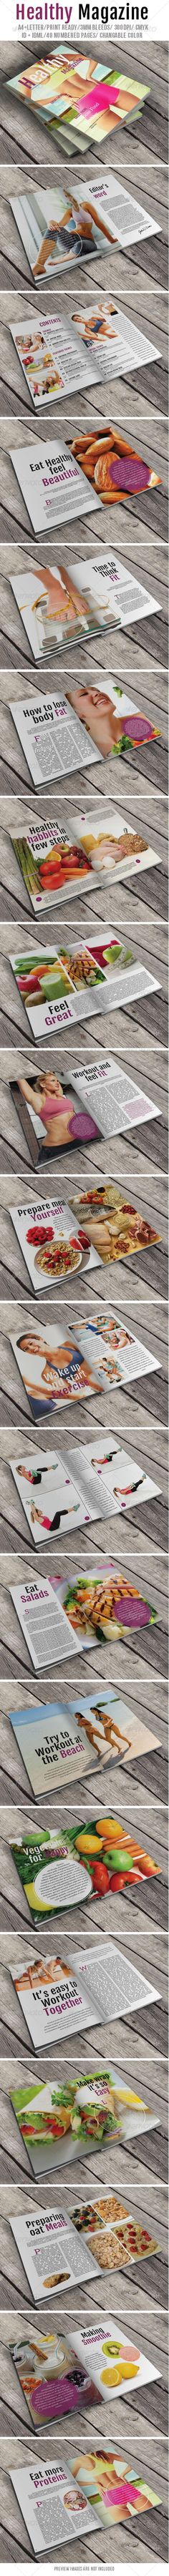 Healthy Magazine, #magazine #template #fitness #workout #healthy #indesign